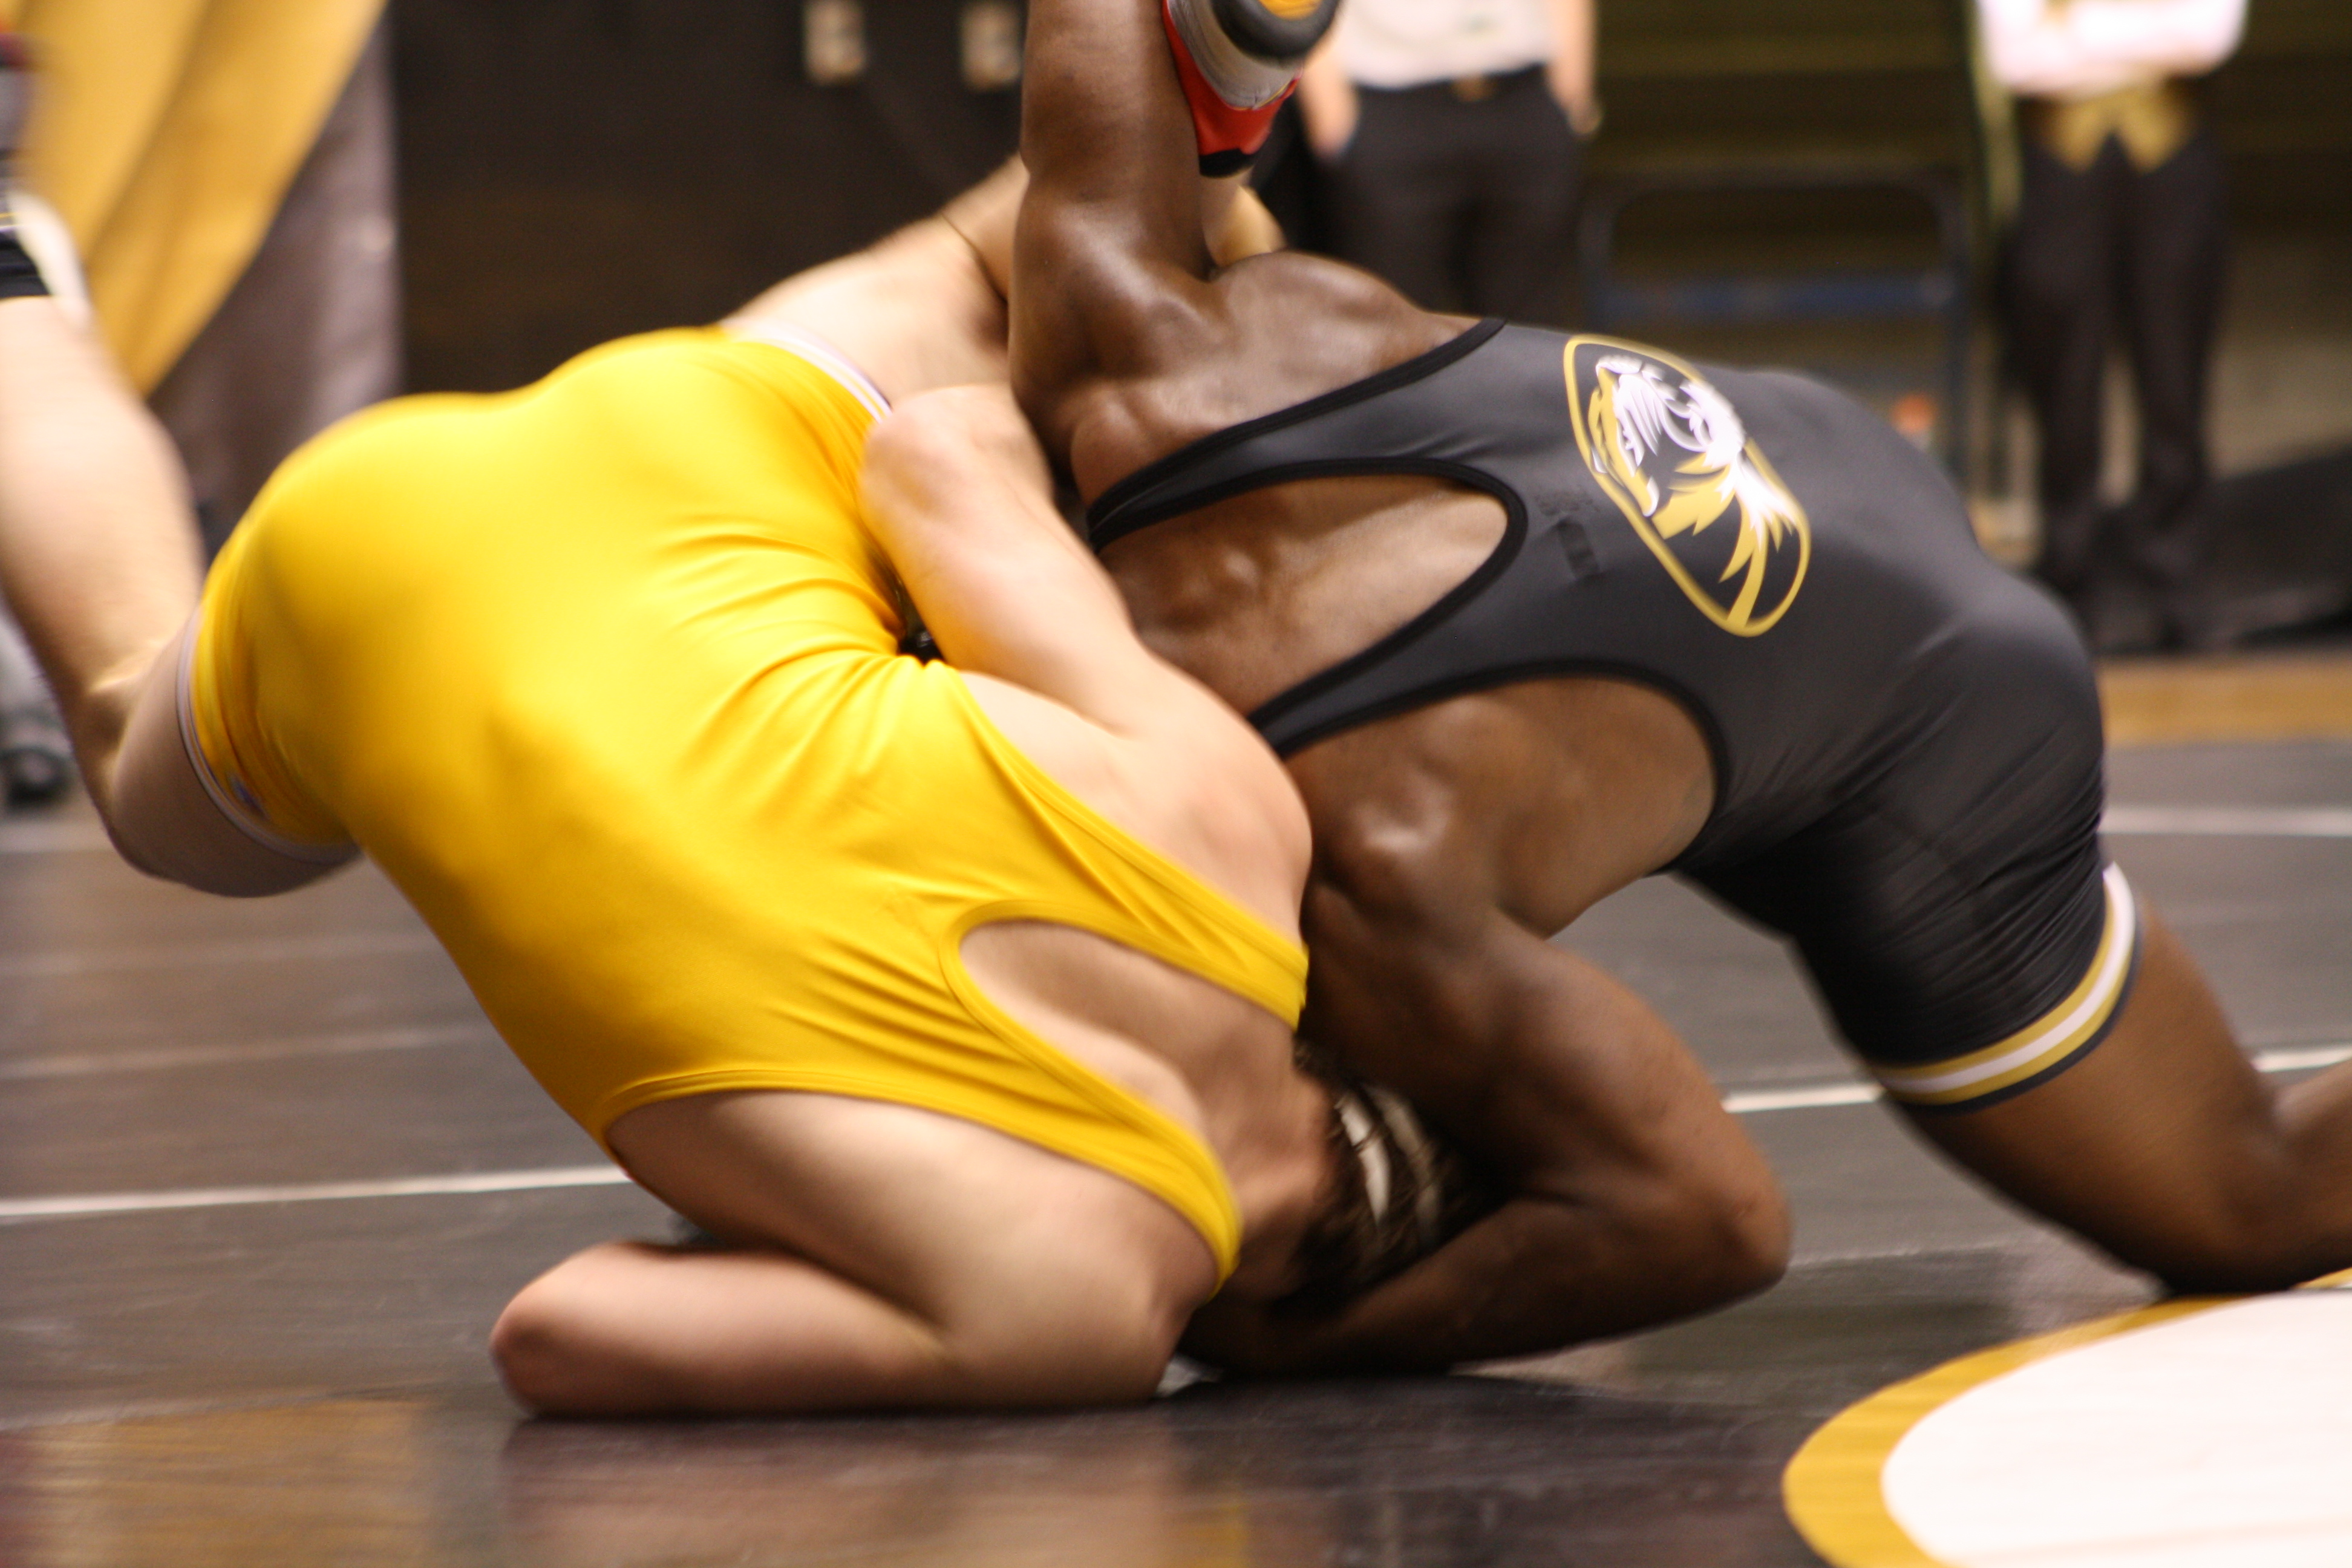 J'Den Cox used a great suicide cradle to pin his Ken State foe (neither the cradle nor the foe are actually pictured)